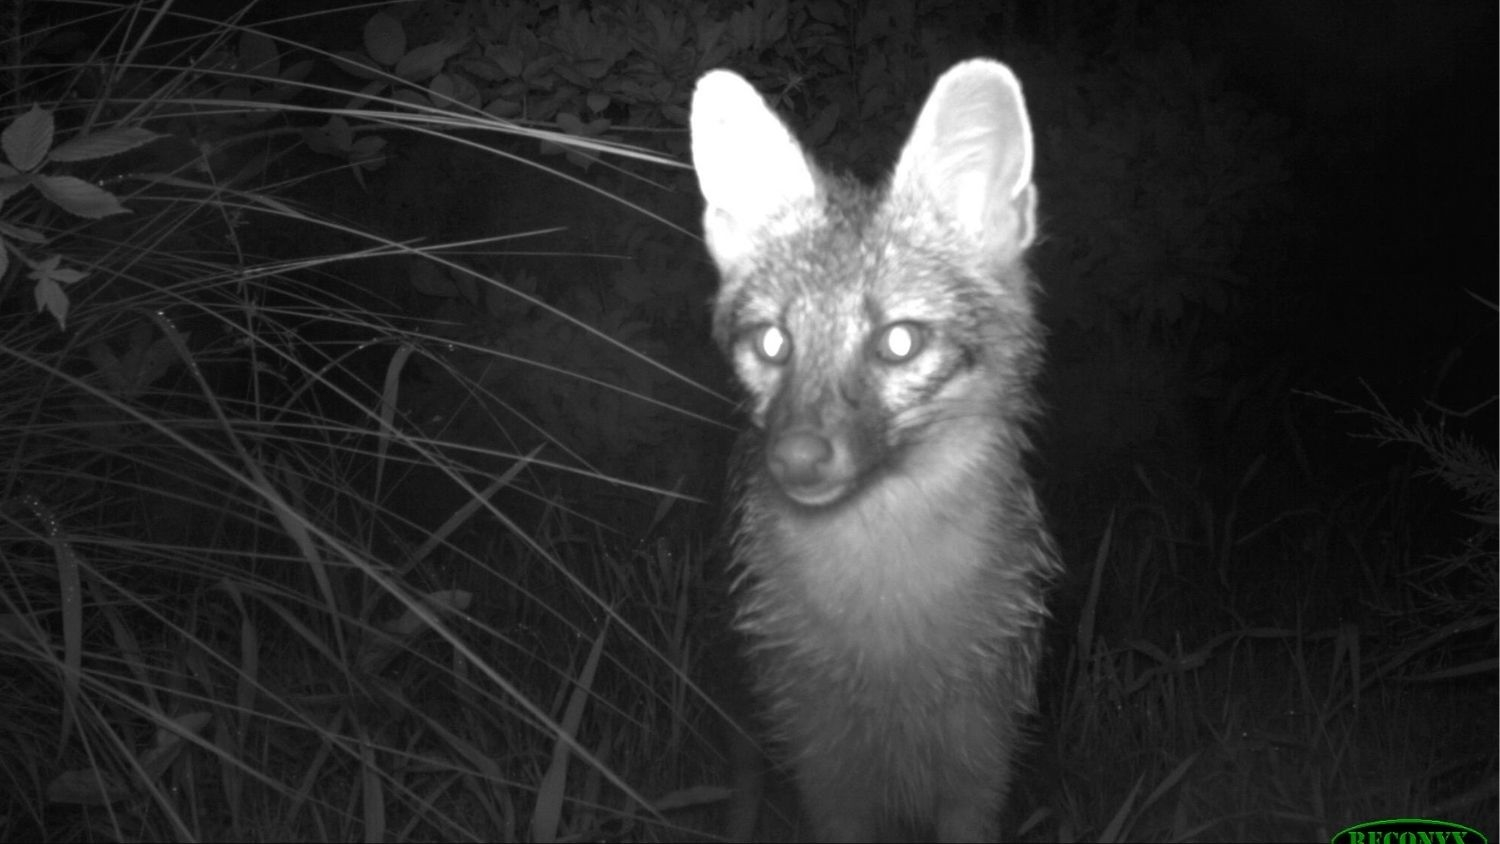 Wild fox - Wildlife Flock to Backyards for Food From People - Forestry and Environmental Resources NC State University